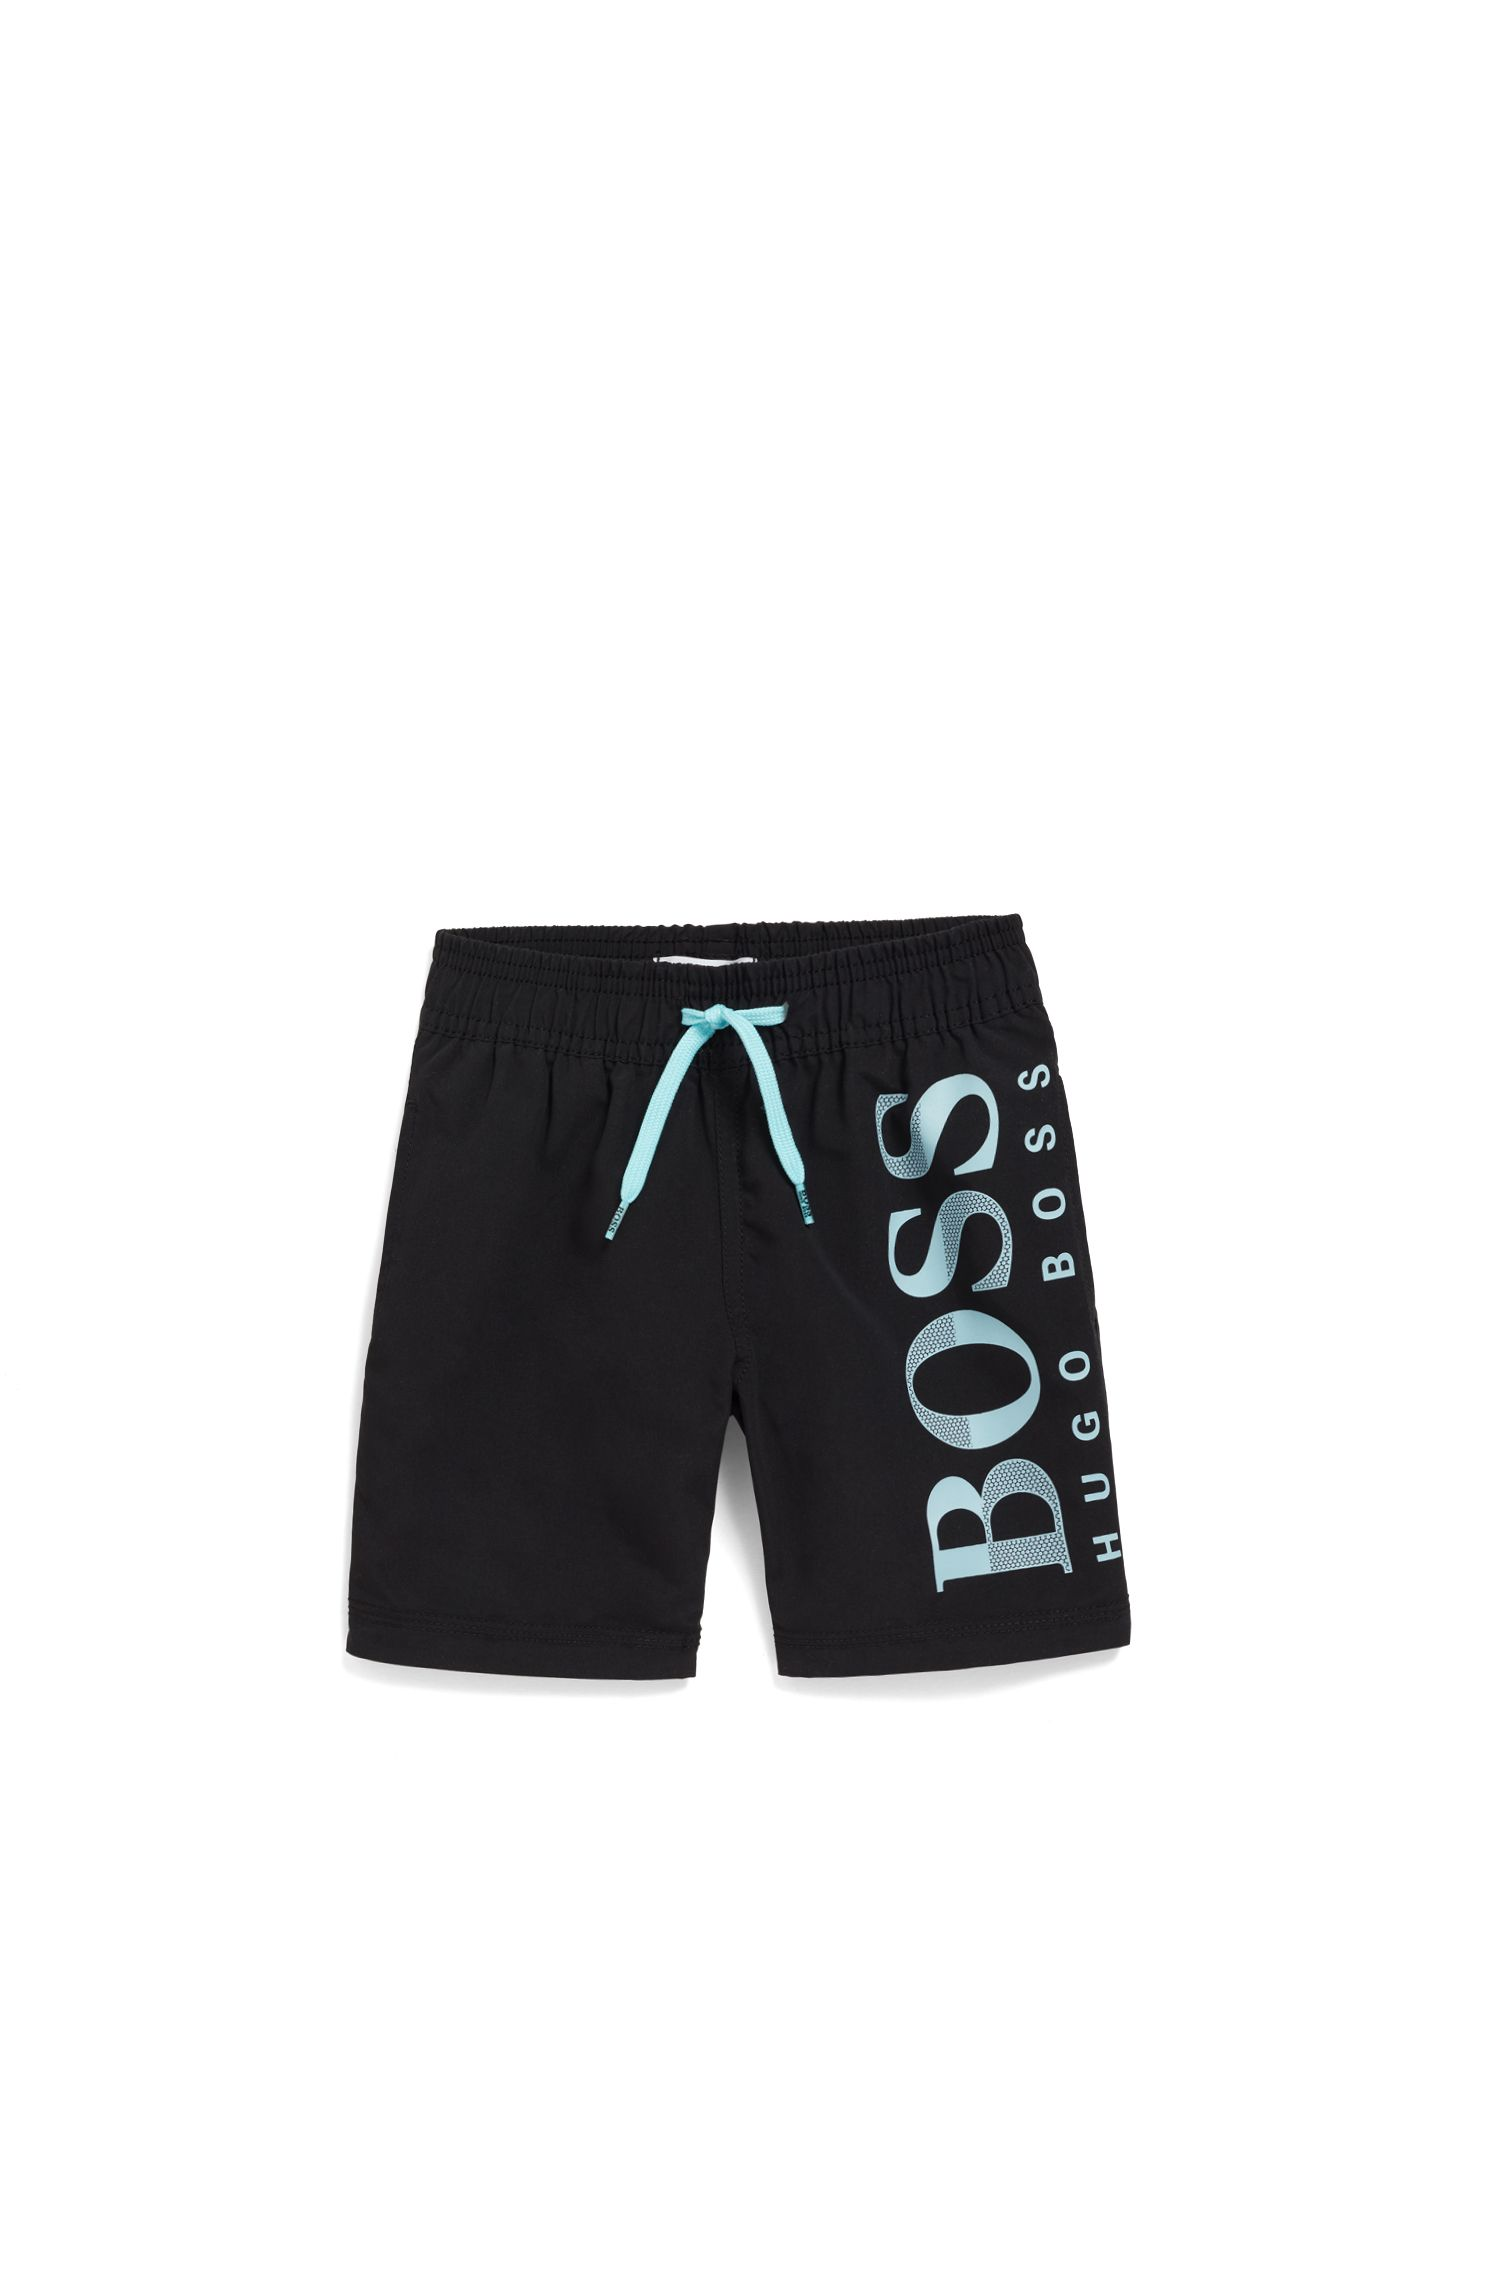 Kids' logo swim shorts in quick-drying technical fabric, Black